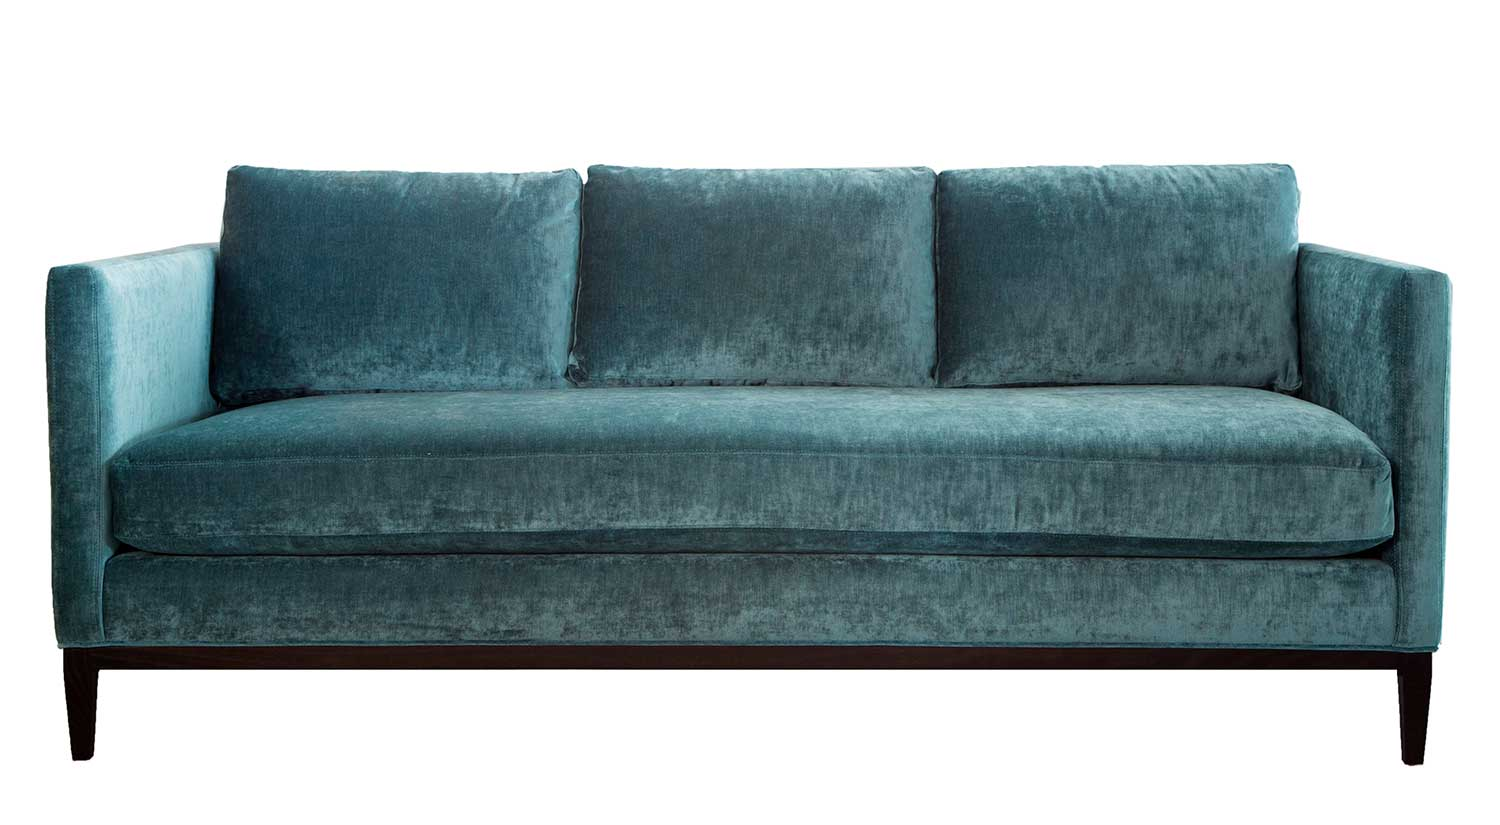 apt size sectional sofas sofa bed online circle furniture - fiona | bench seat ...